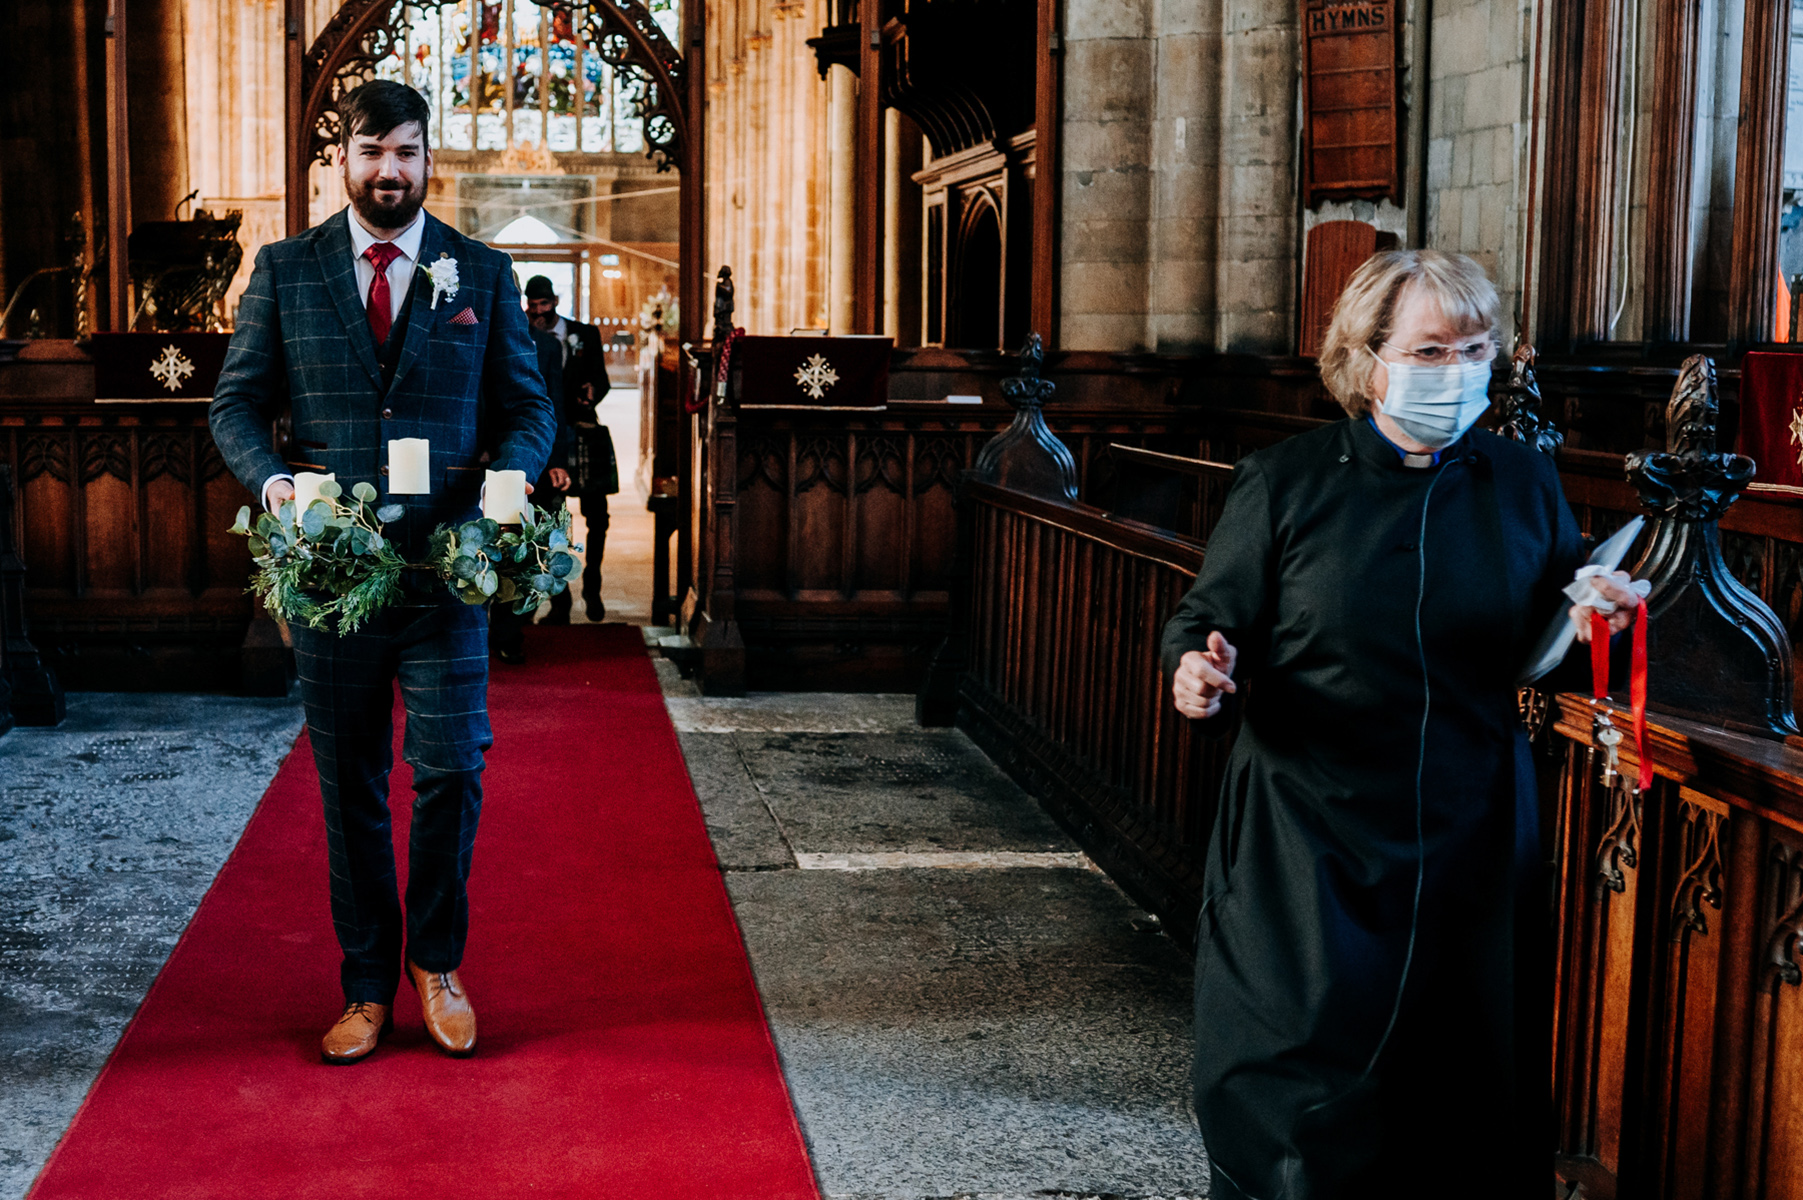 Hull Minster East Yorkshire Wedding Photos | The groom arrives at the church